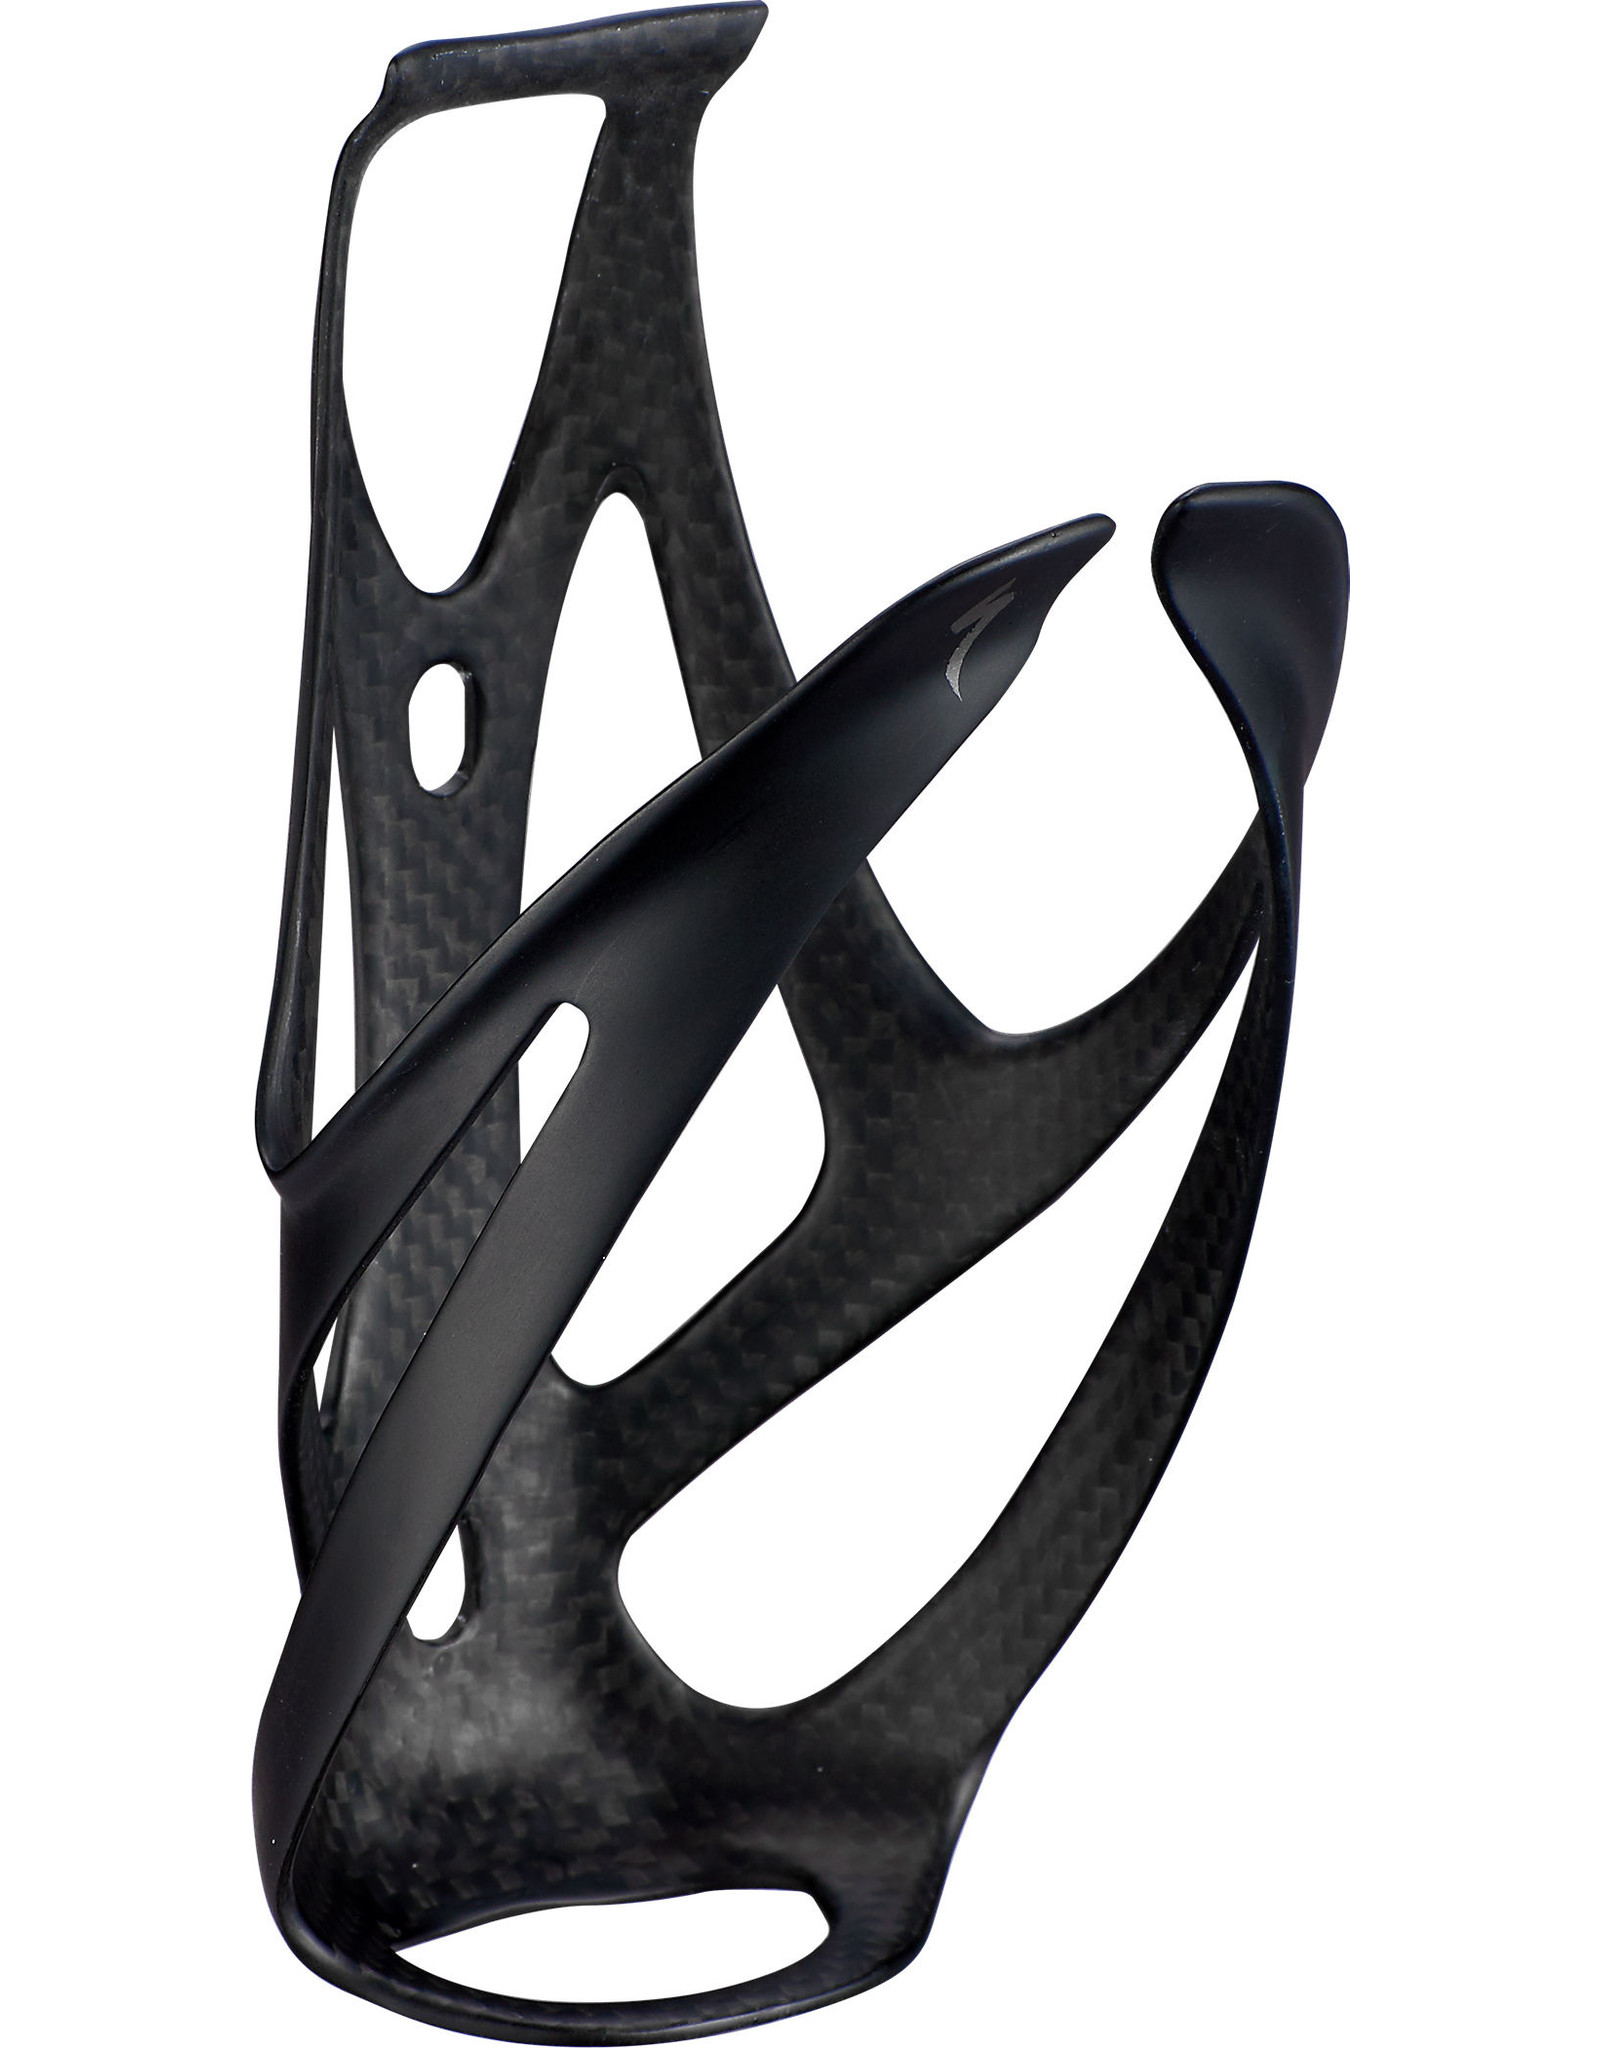 SPECIALIZED SW CARBON RIB CAGE III